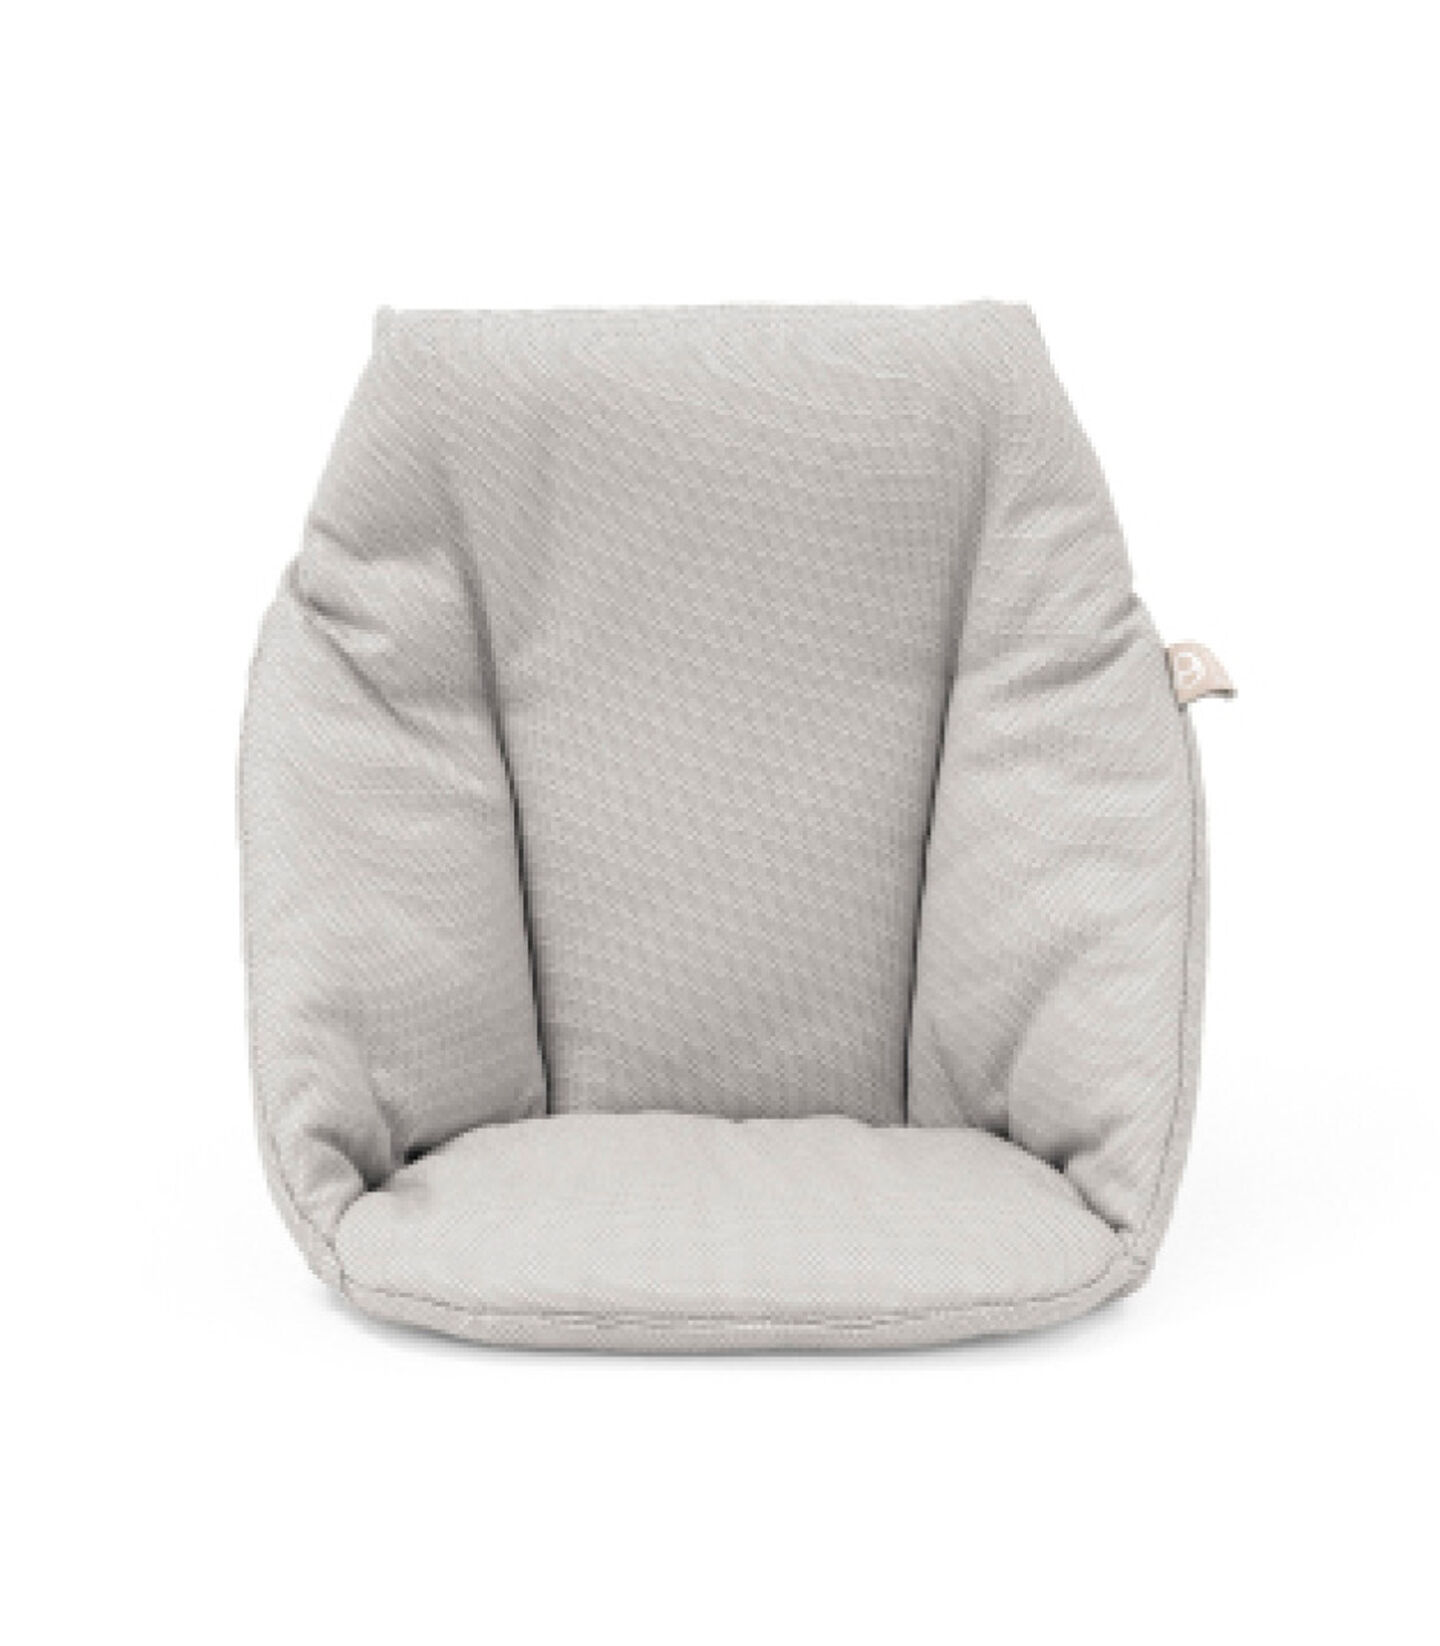 Tripp Trapp® Baby Cushion Timeless Grey OCS, Gris intemporel, mainview view 2